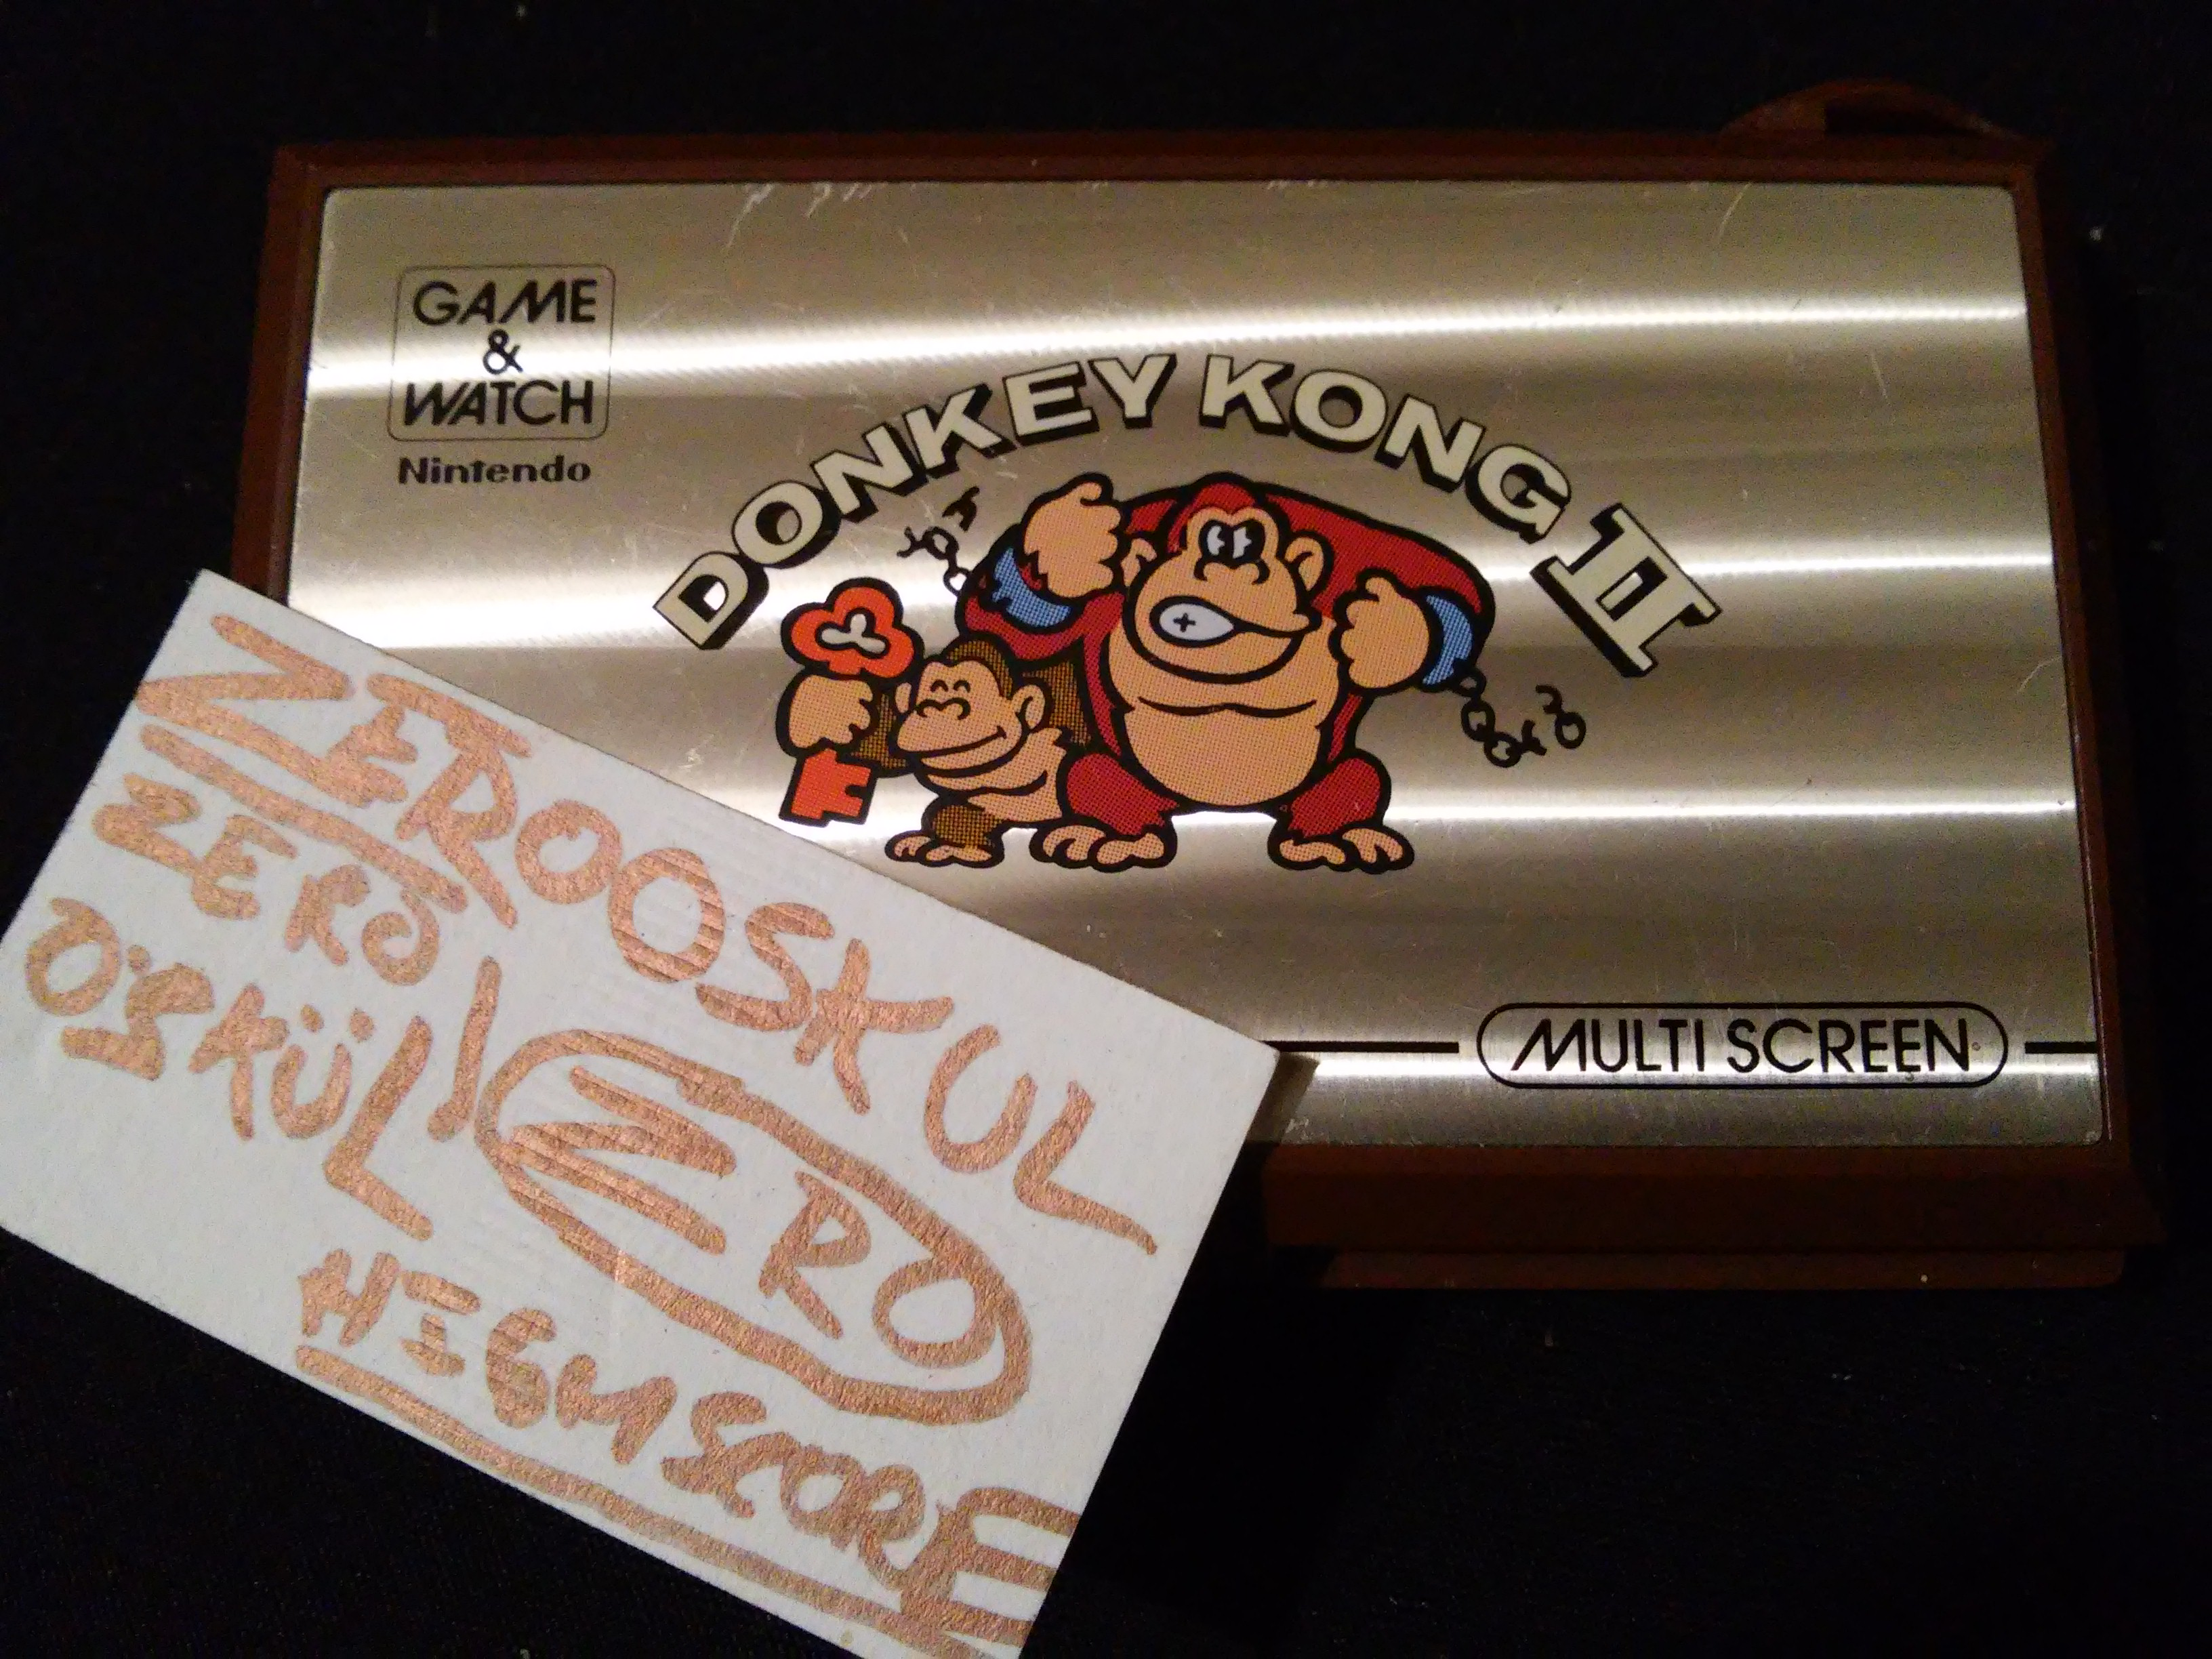 Game and Watch: Donkey Kong II 671 points